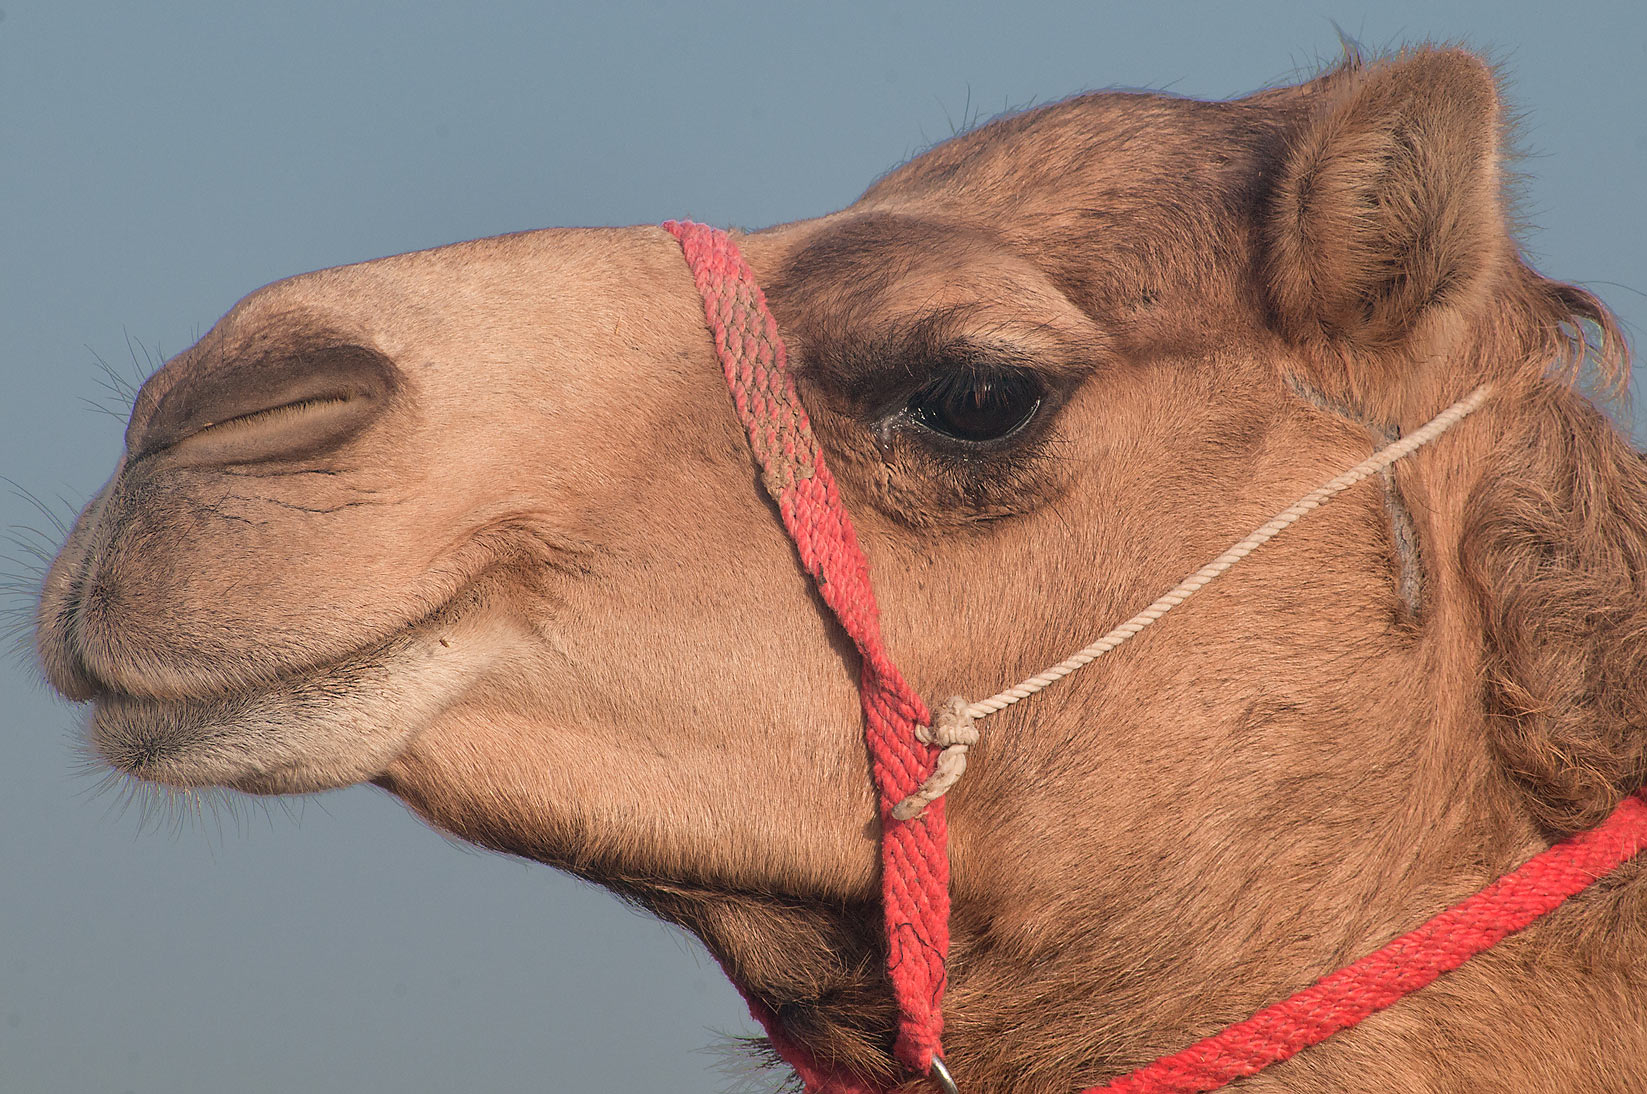 Head of a camel at Camel Market (Souq) in Wholesale Markets area. Doha, Qatar